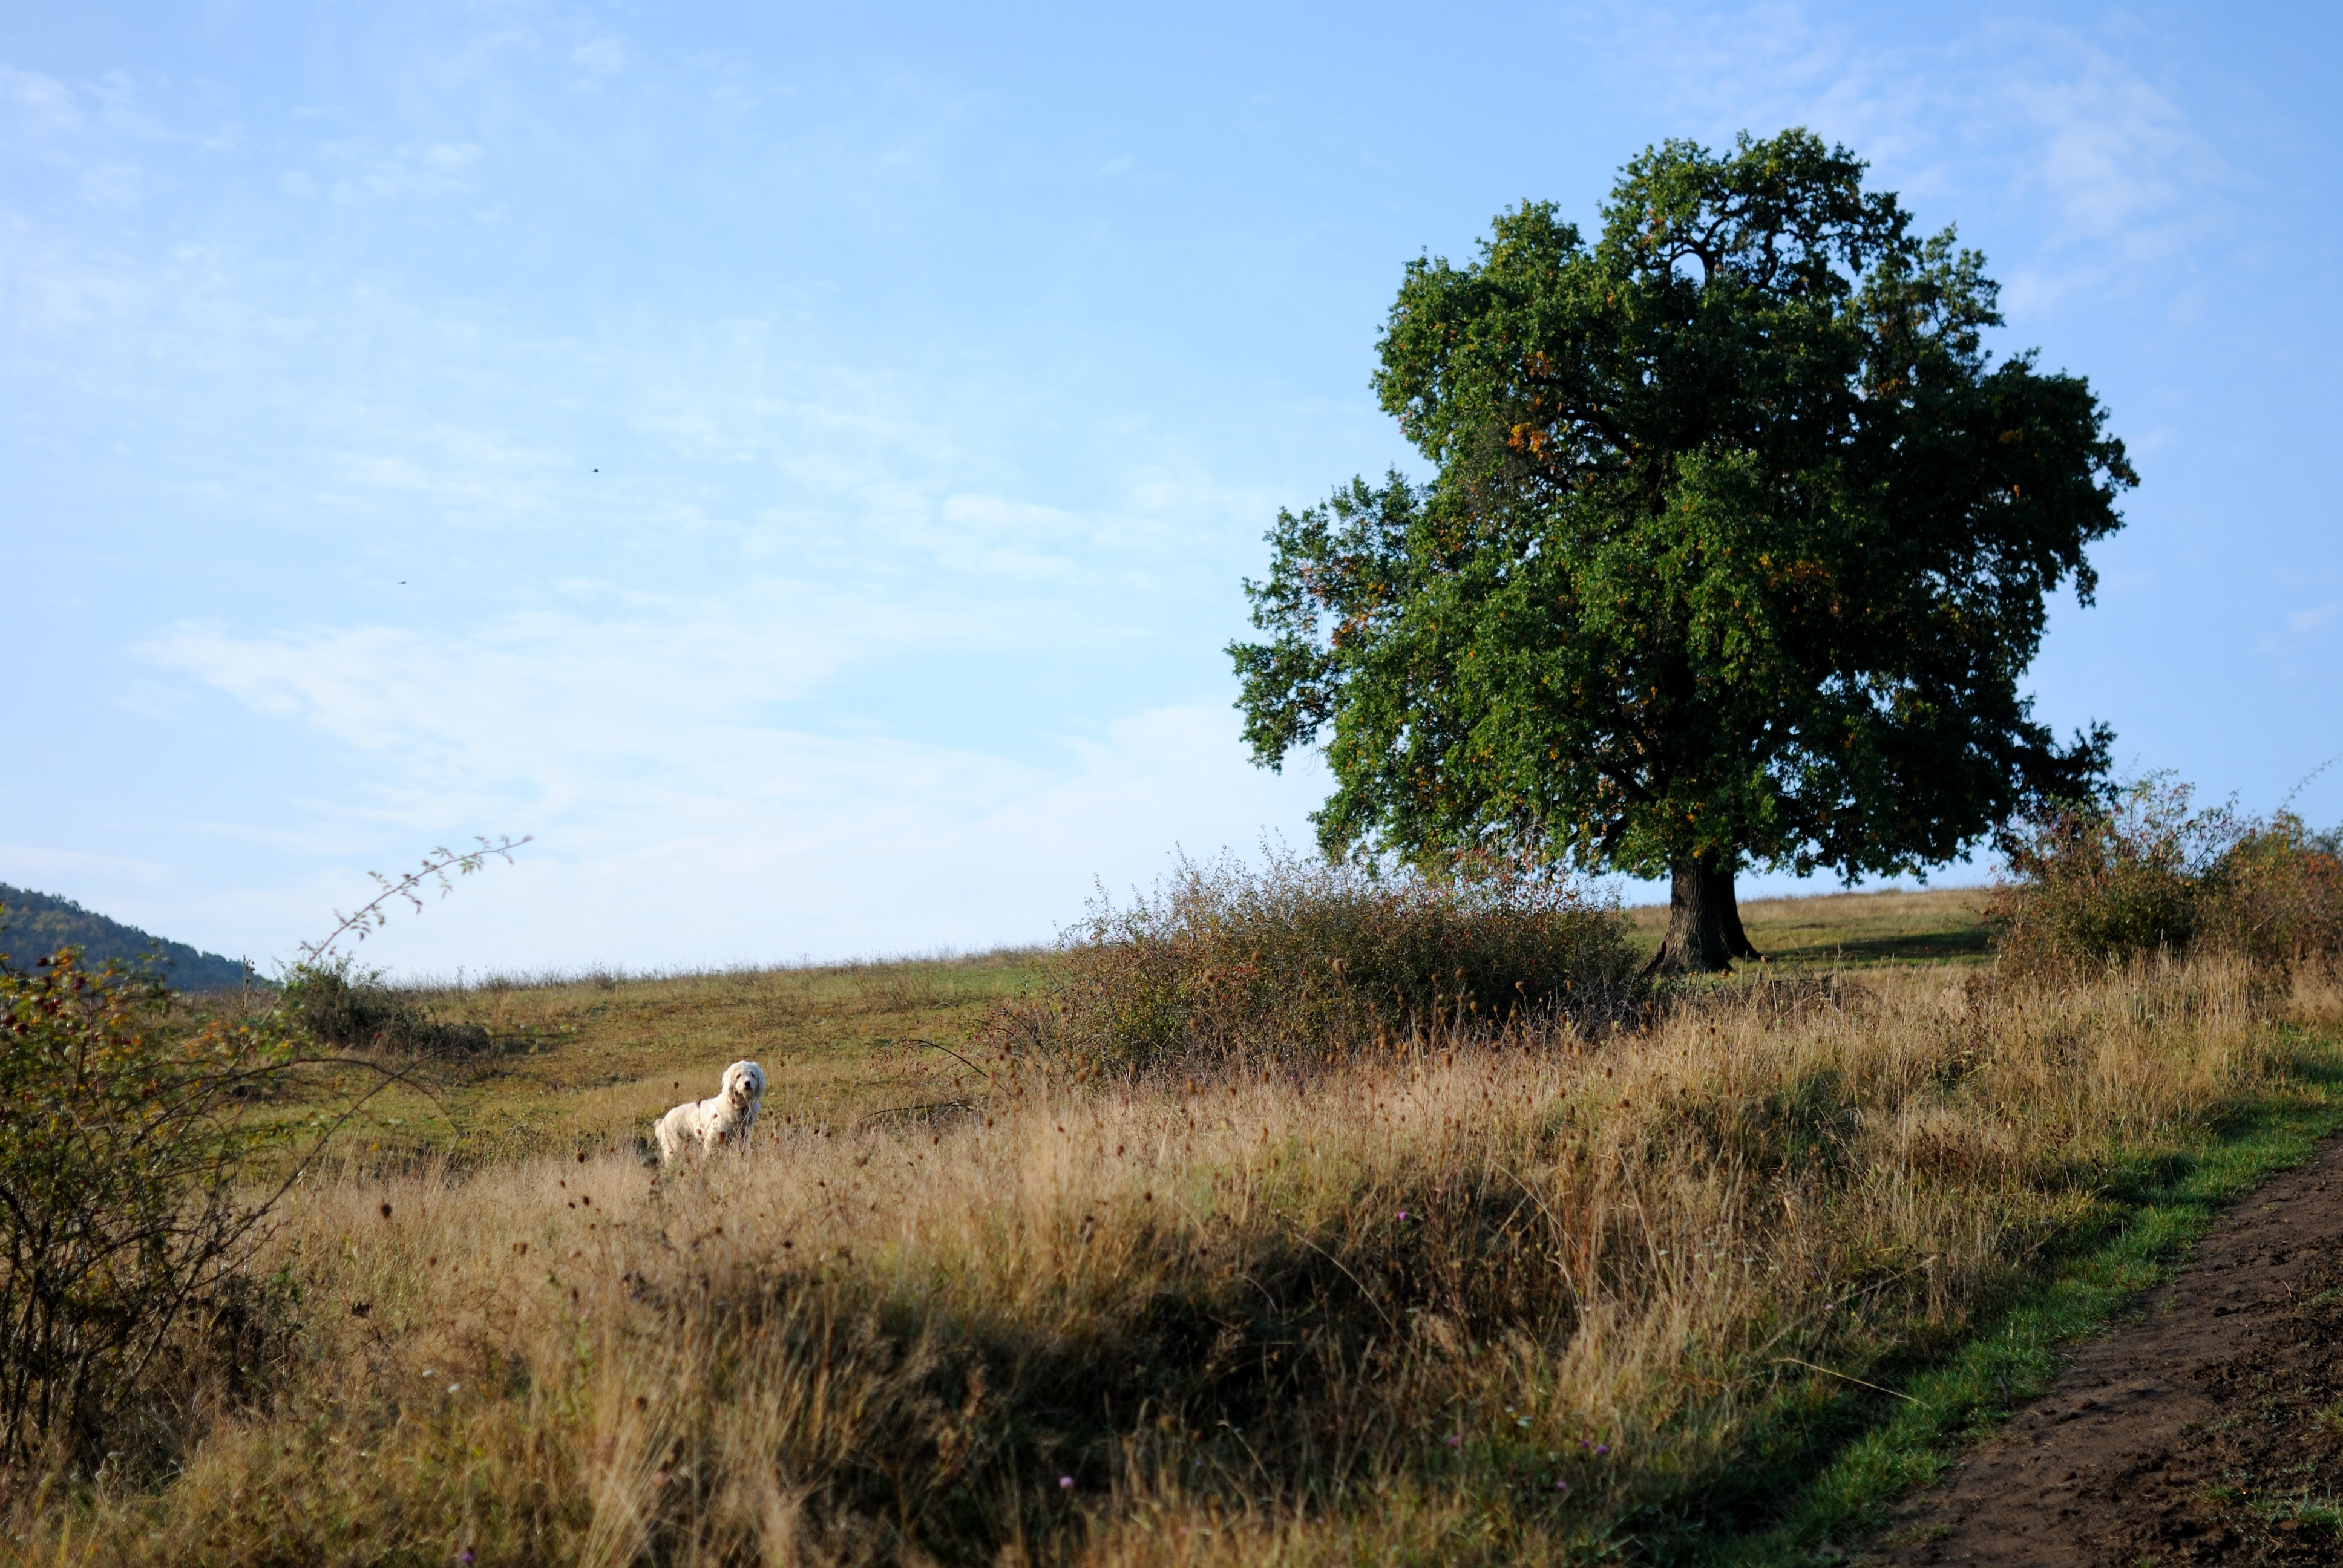 A rural landscape with a white poodle standing in the grass near a shady tree